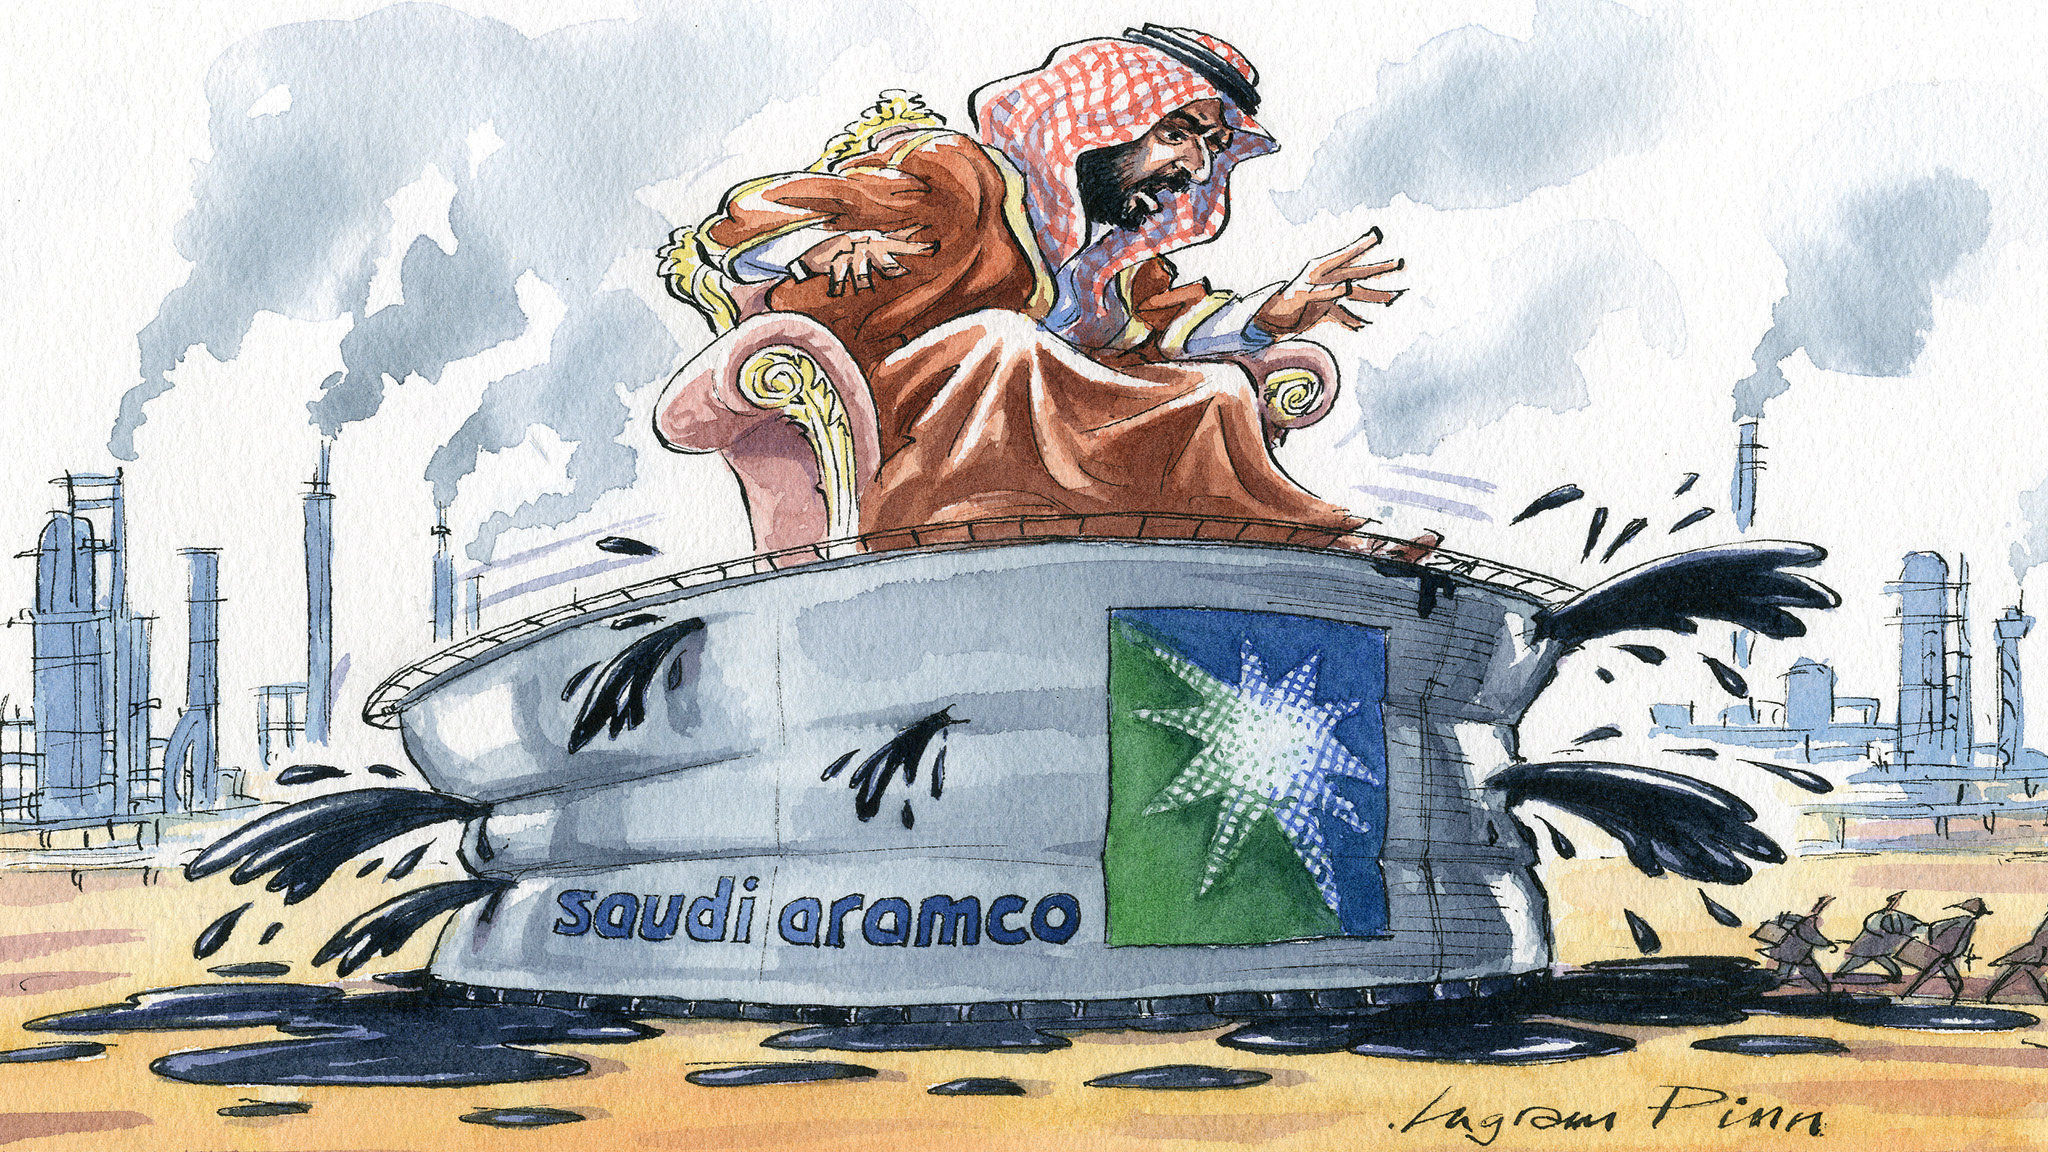 Saudi Aramco does not rule the world